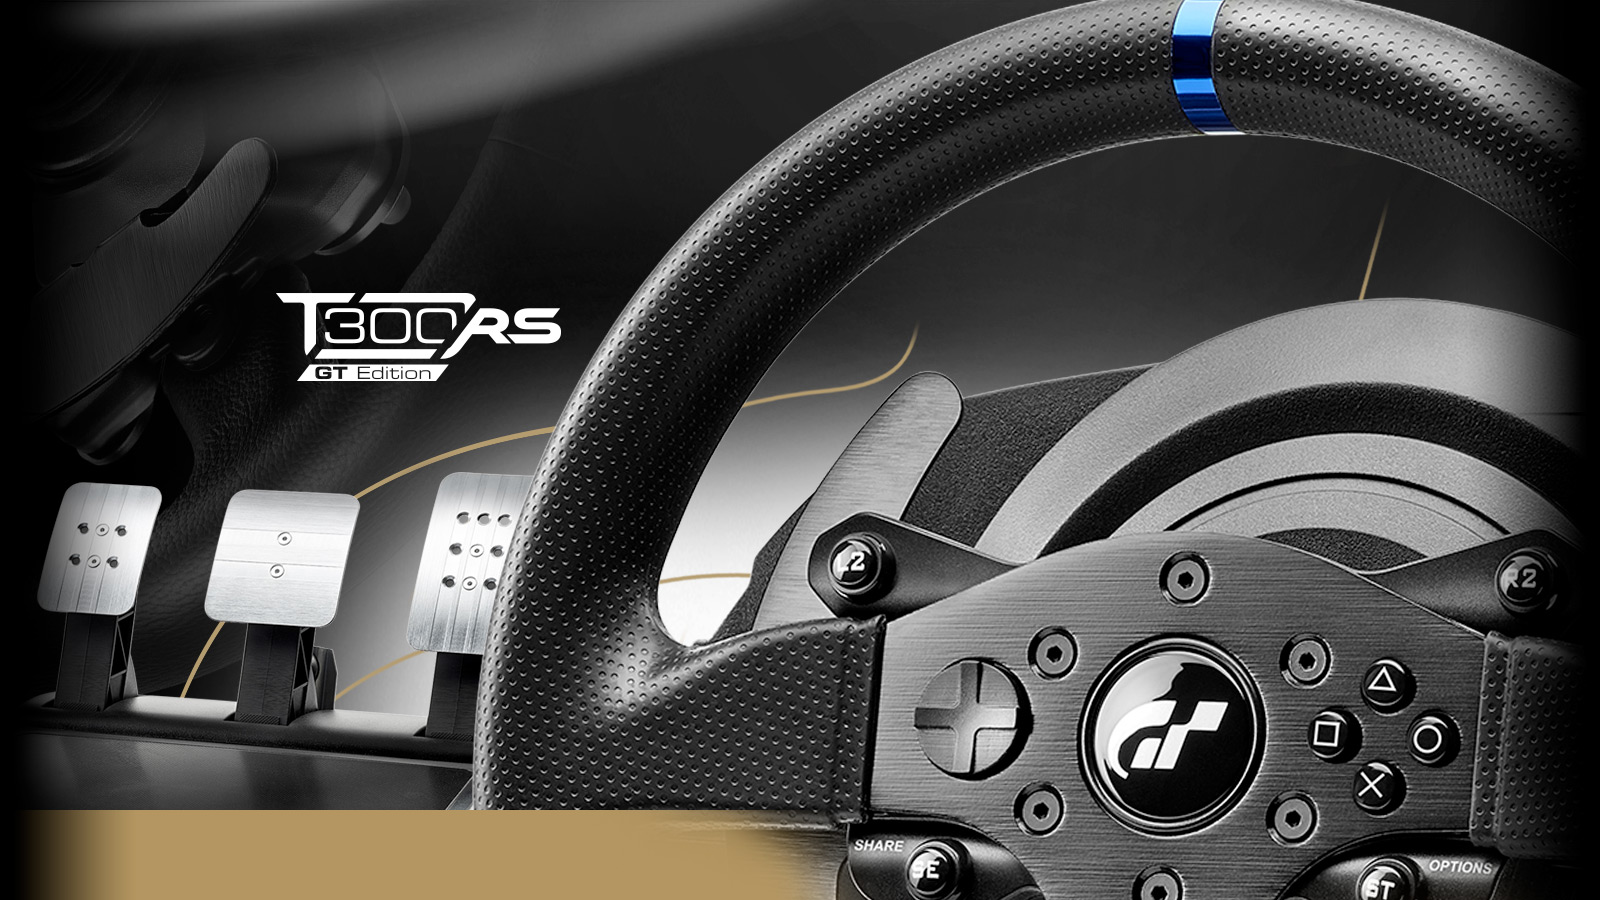 Thrustmaster T300 RS GT Edition Steering Wheel2